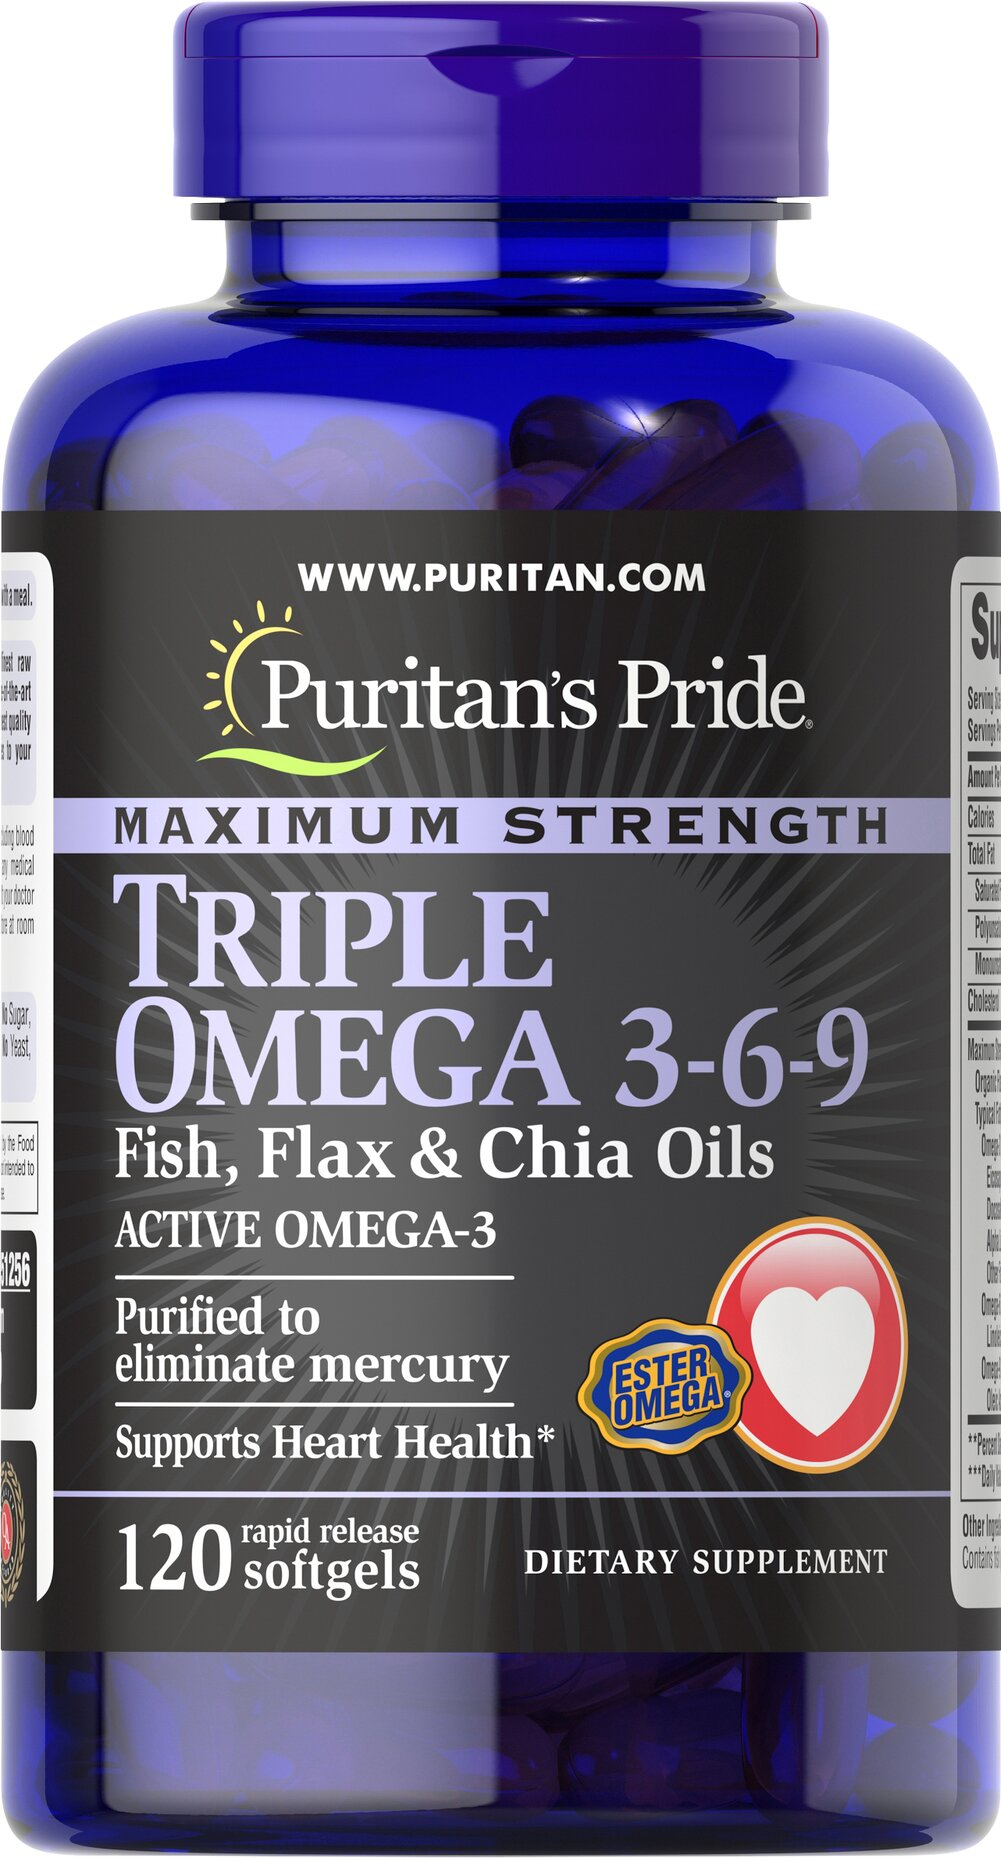 "Triple Omega 3-6-9 with Fish, Flax & Chia <p>Contains Omega-3, Omega-6 and Omega-9 – the ""good"" fats important for cellular, heart and metabolic health.**  </p> <p>TRIPLE OMEGA 3-6-9 Fish and Flax Oils contain a proprietary blend of essential oils, including Flaxseed Oil,  Ester Omega Fish Oil and Chia. </p> <p>Supports Heart Health.* </p> <b><p>Purified to eliminate mercury.</b></p> 120 Softgels  $24.99"